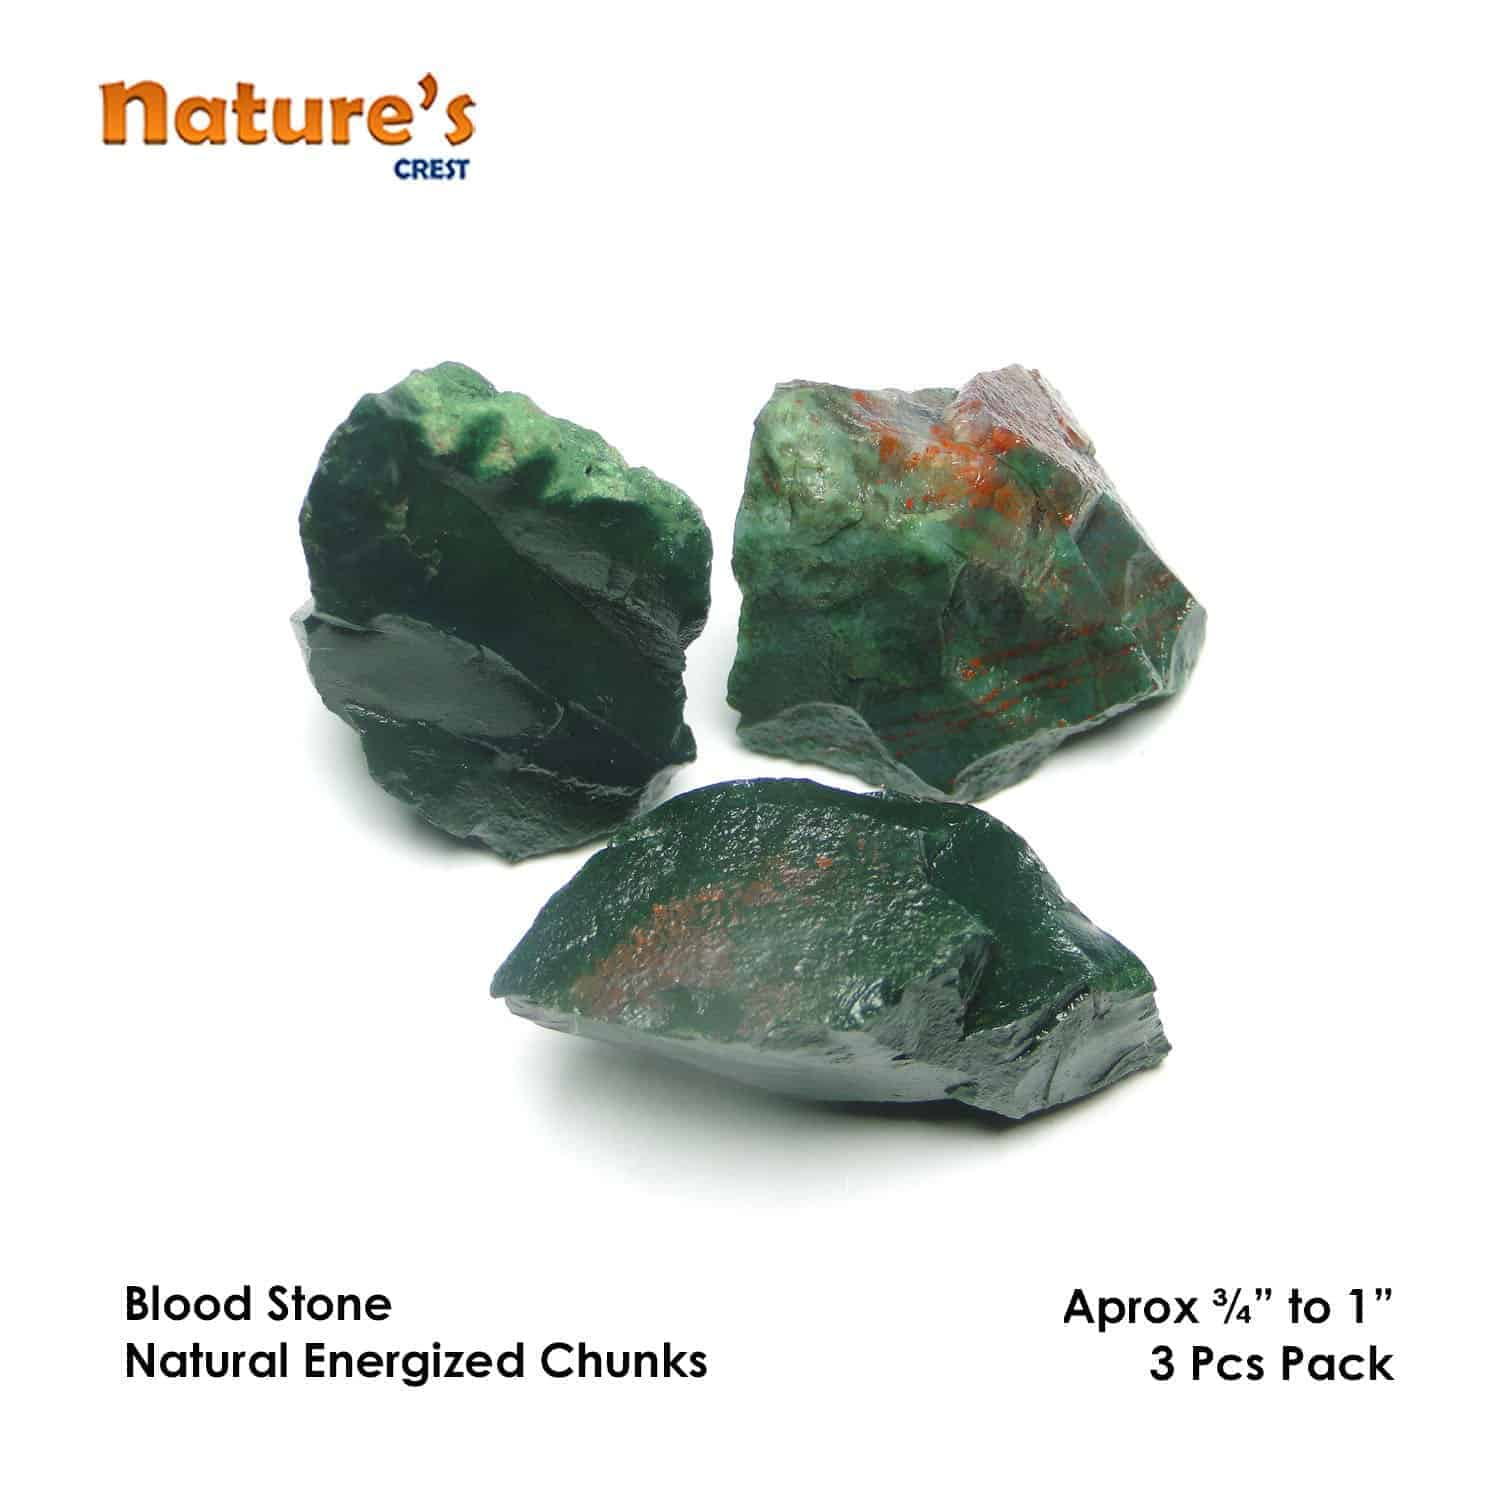 Blood Stone Natural Raw Rough Chunks Nature's Crest RC019 ₹199.00